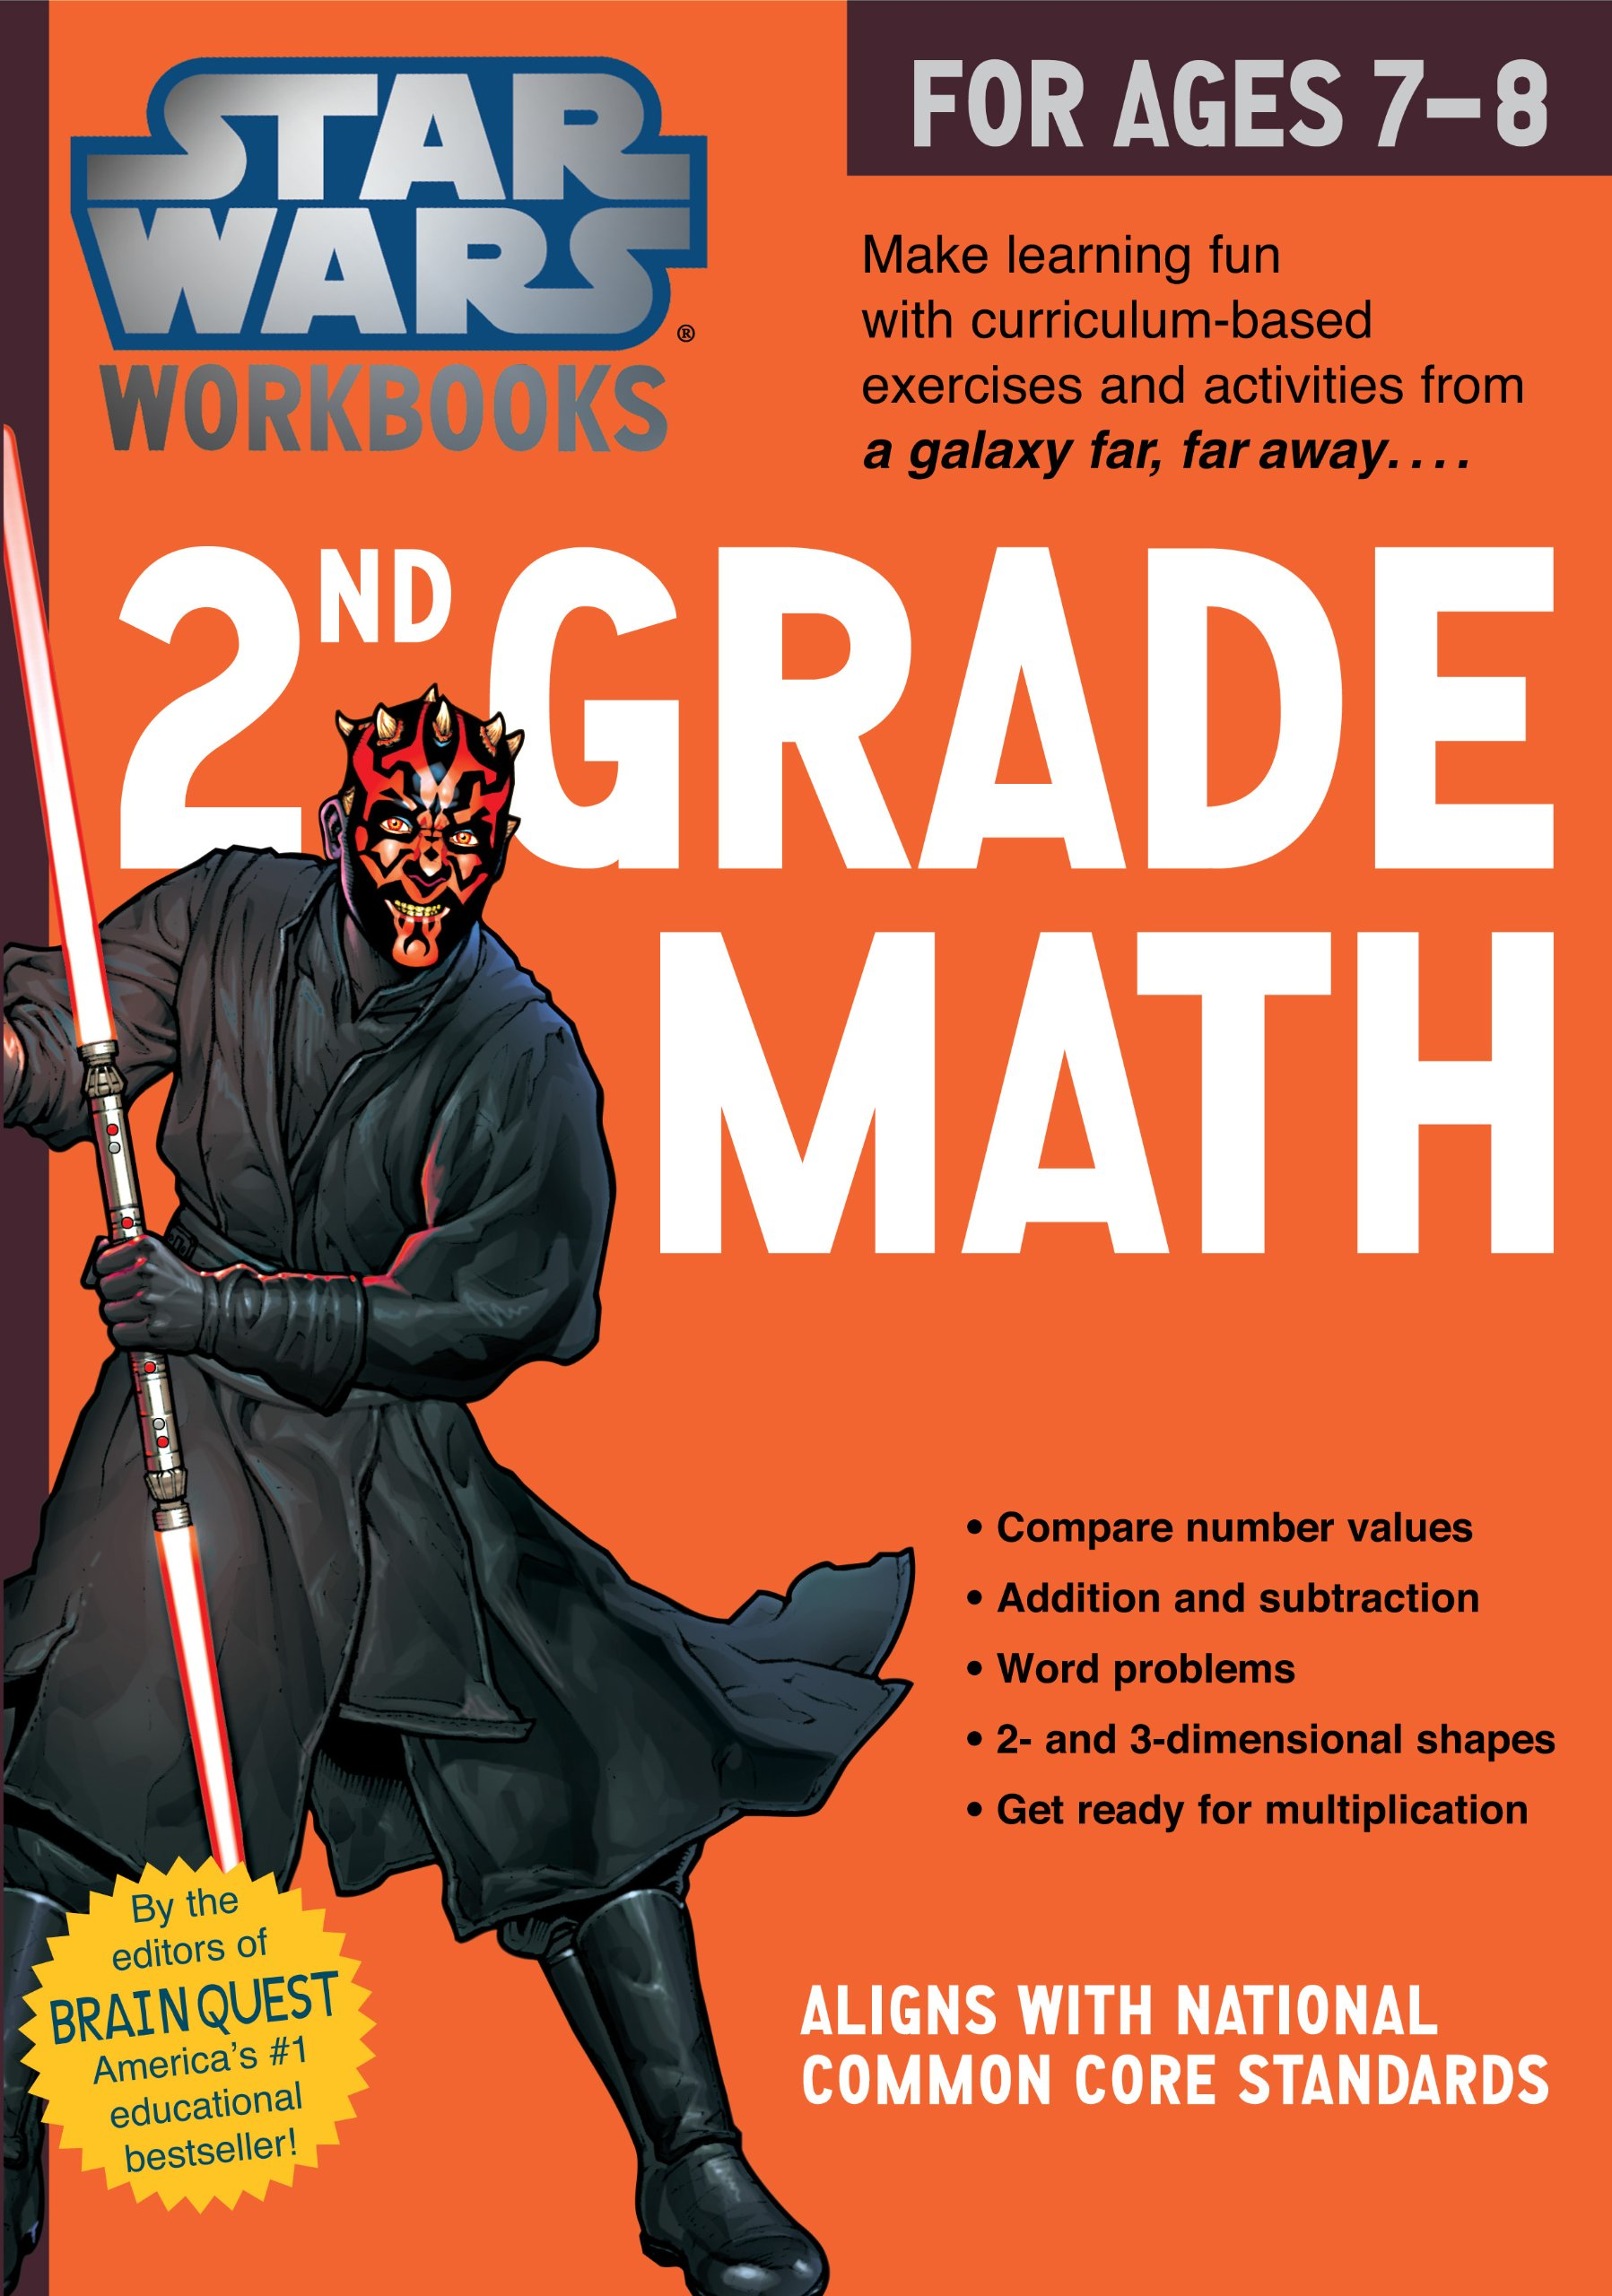 Star Wars Workbook 2nd Grade Math Star Wars Workbooks Workman – Star Wars Math Worksheets